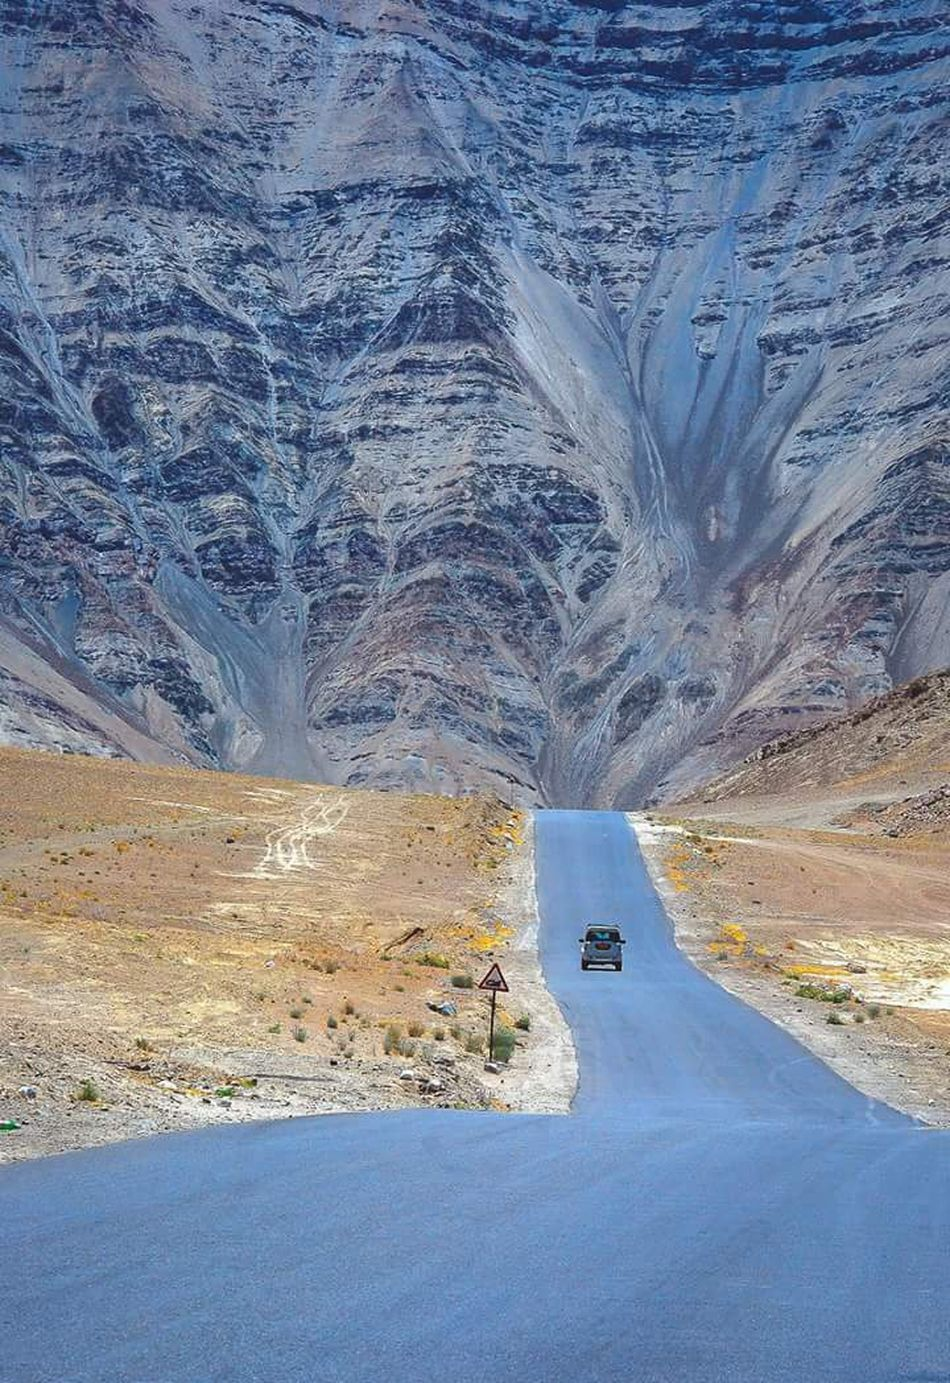 Magnetic Hill, Leh Adventure Vacations Travel Indianphotography Mountain Himachal Pradesh, India Himalayas Ladakh Travel Destinations Mountain Range Cold Desert India